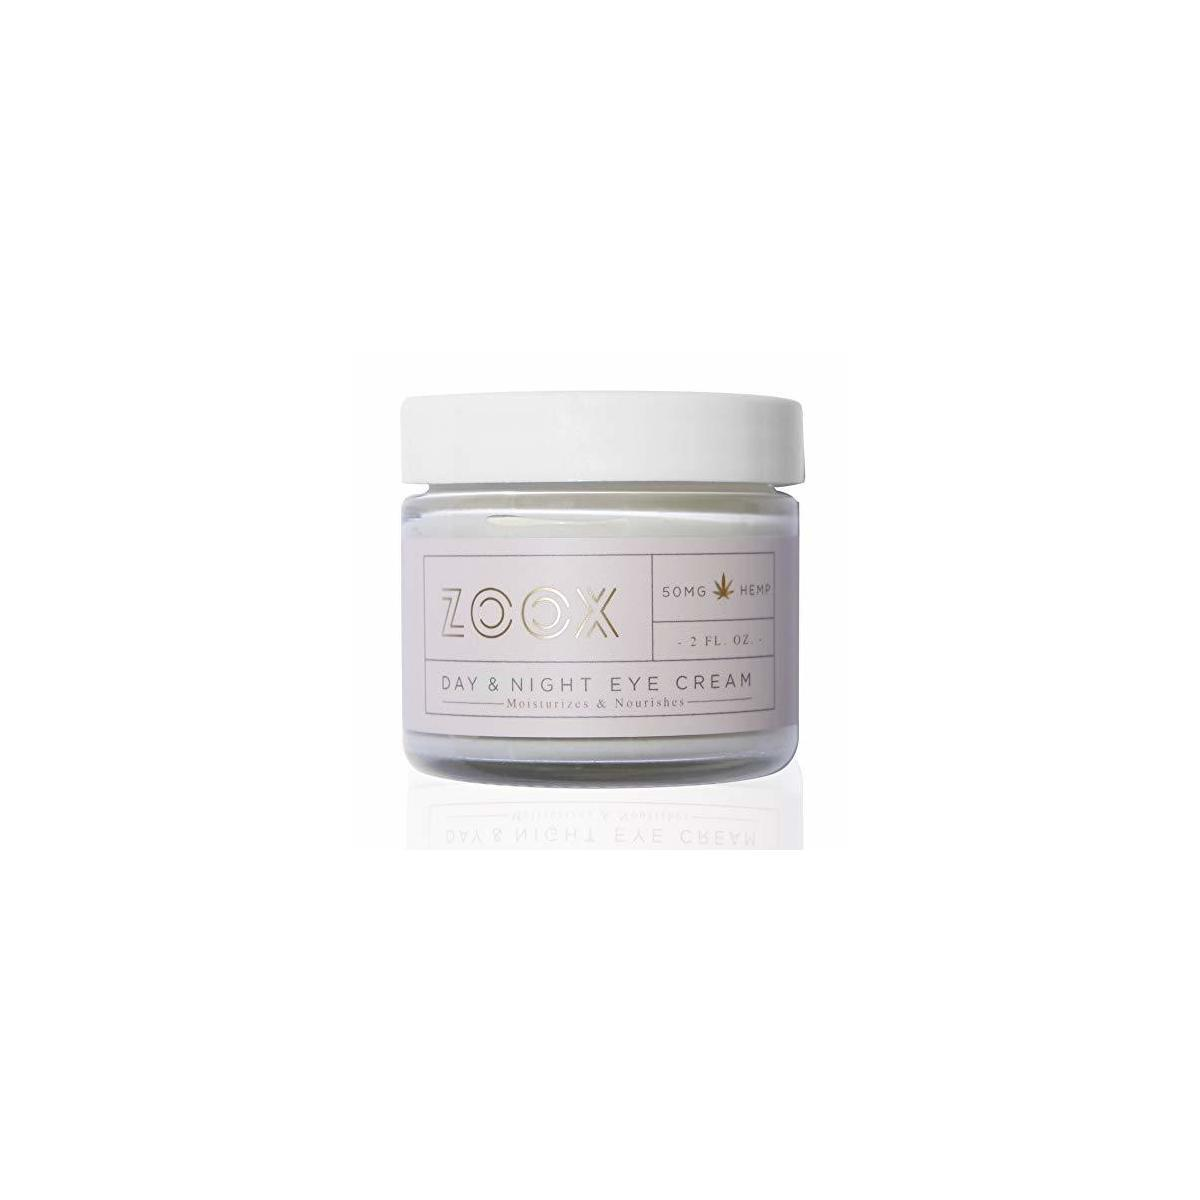 DAY & NIGHT Intense Moisturizing Under and Around Eye Cream 360 - Made in USA with 100% Organic Plants-Based Ingredients Formulated To Rejuvenate and Repair…